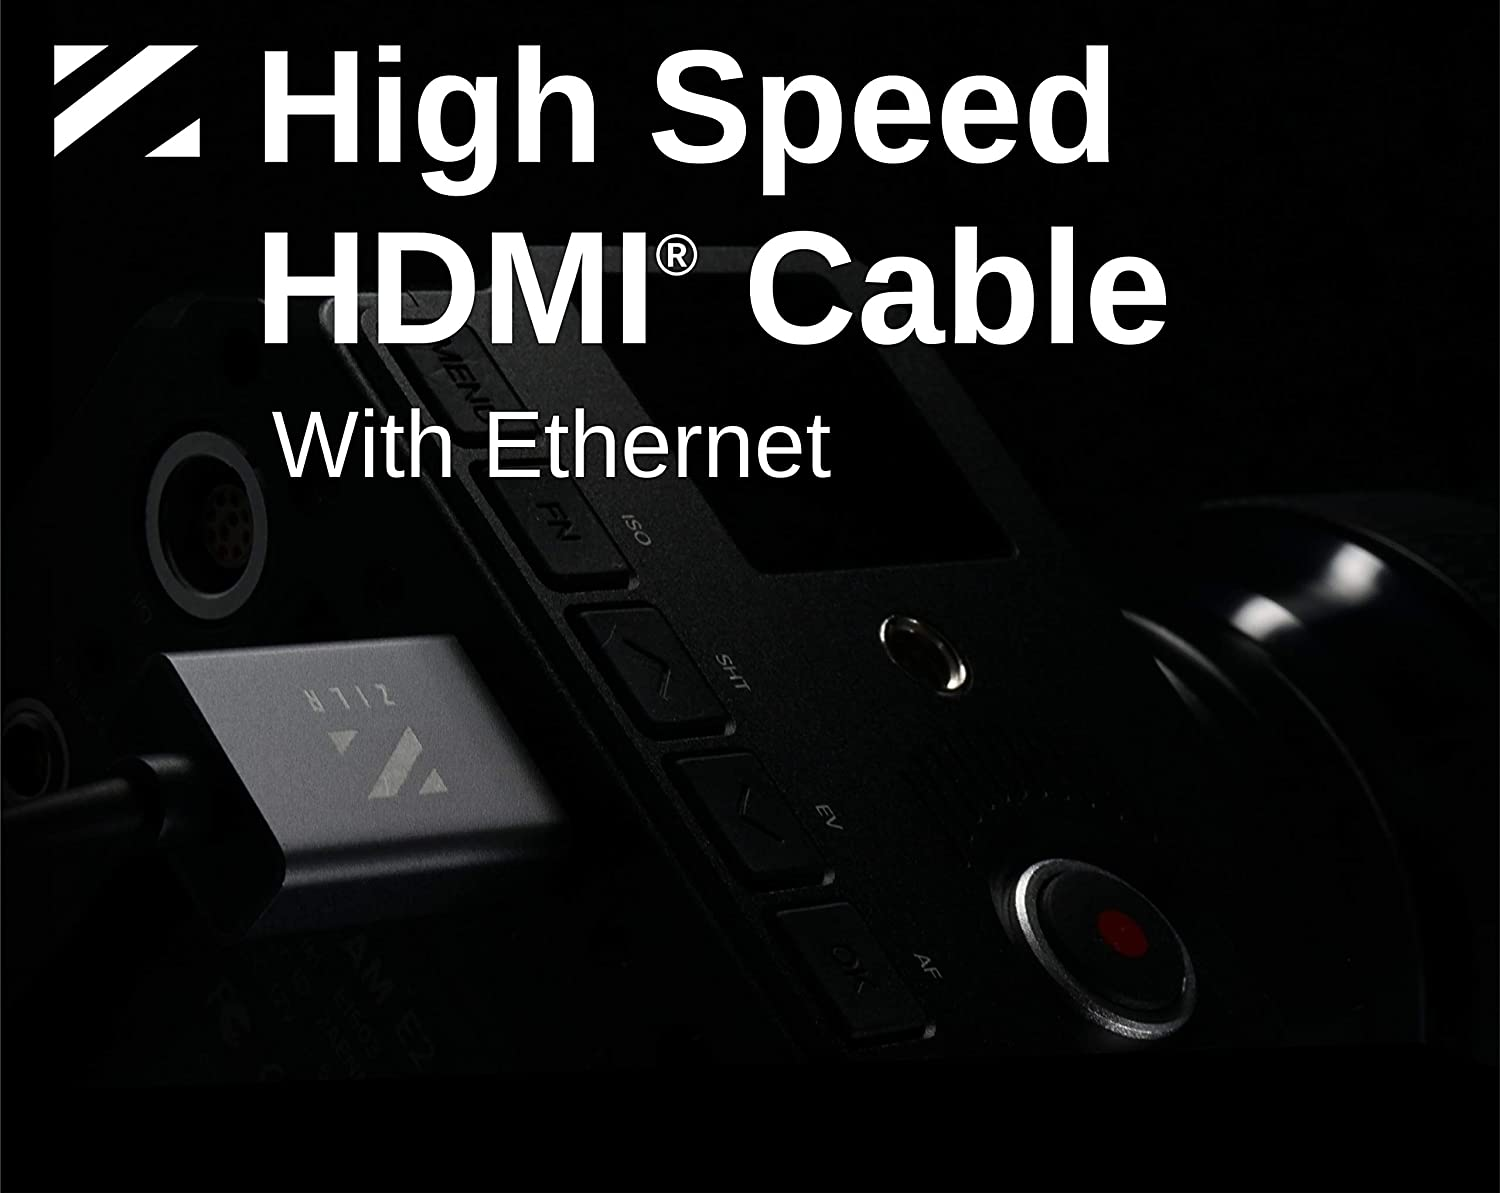 ZILR Ultra High Speed HDMI Cable 4K Ultra HD Ethernet HDMI Type A To Type D Micro HDMI Cable Ultra HDMI Cable 4K HDCP2.2 4K HDMI Camera HDMI Cable